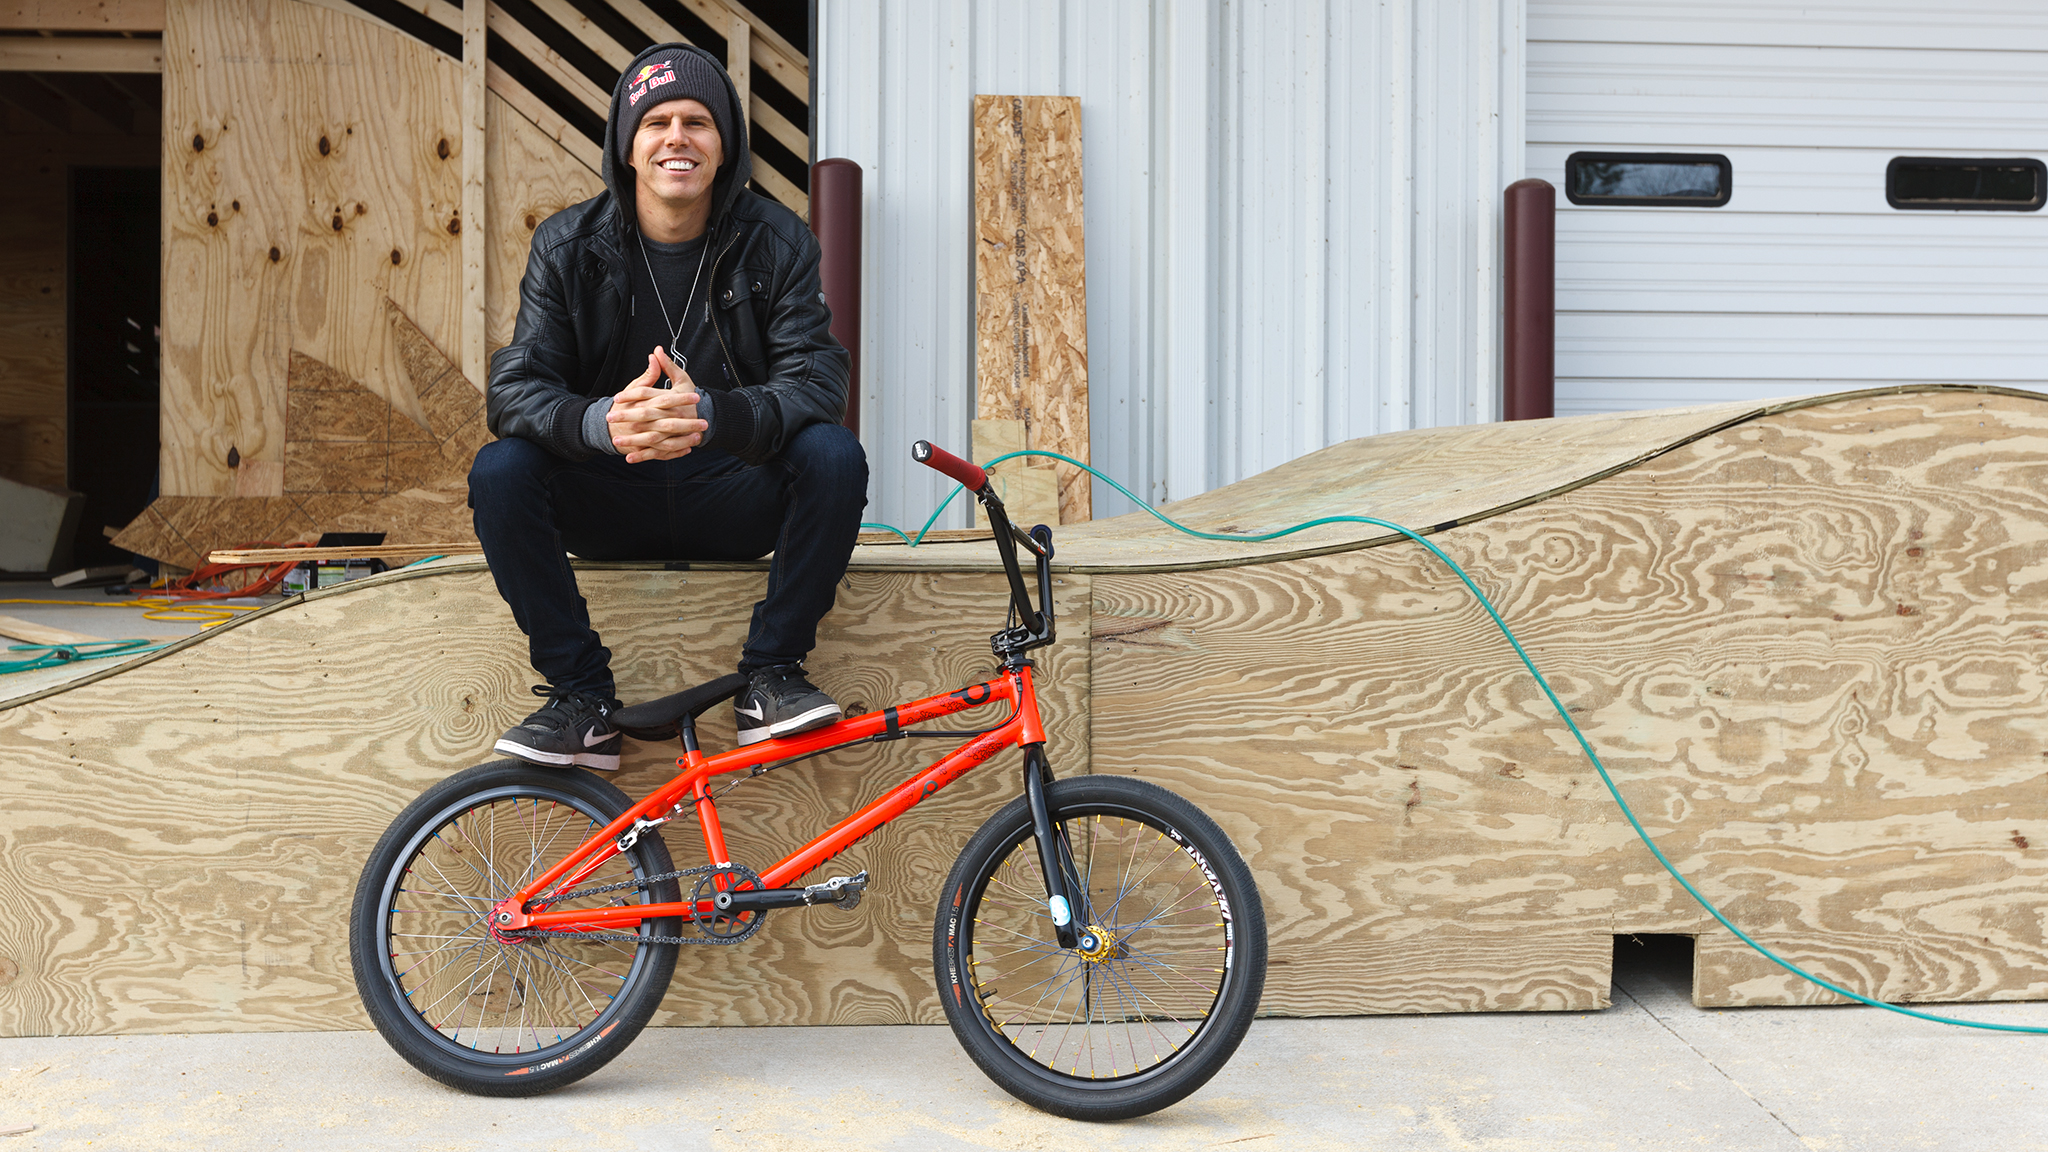 Daniel Dhers and his Specialized P20